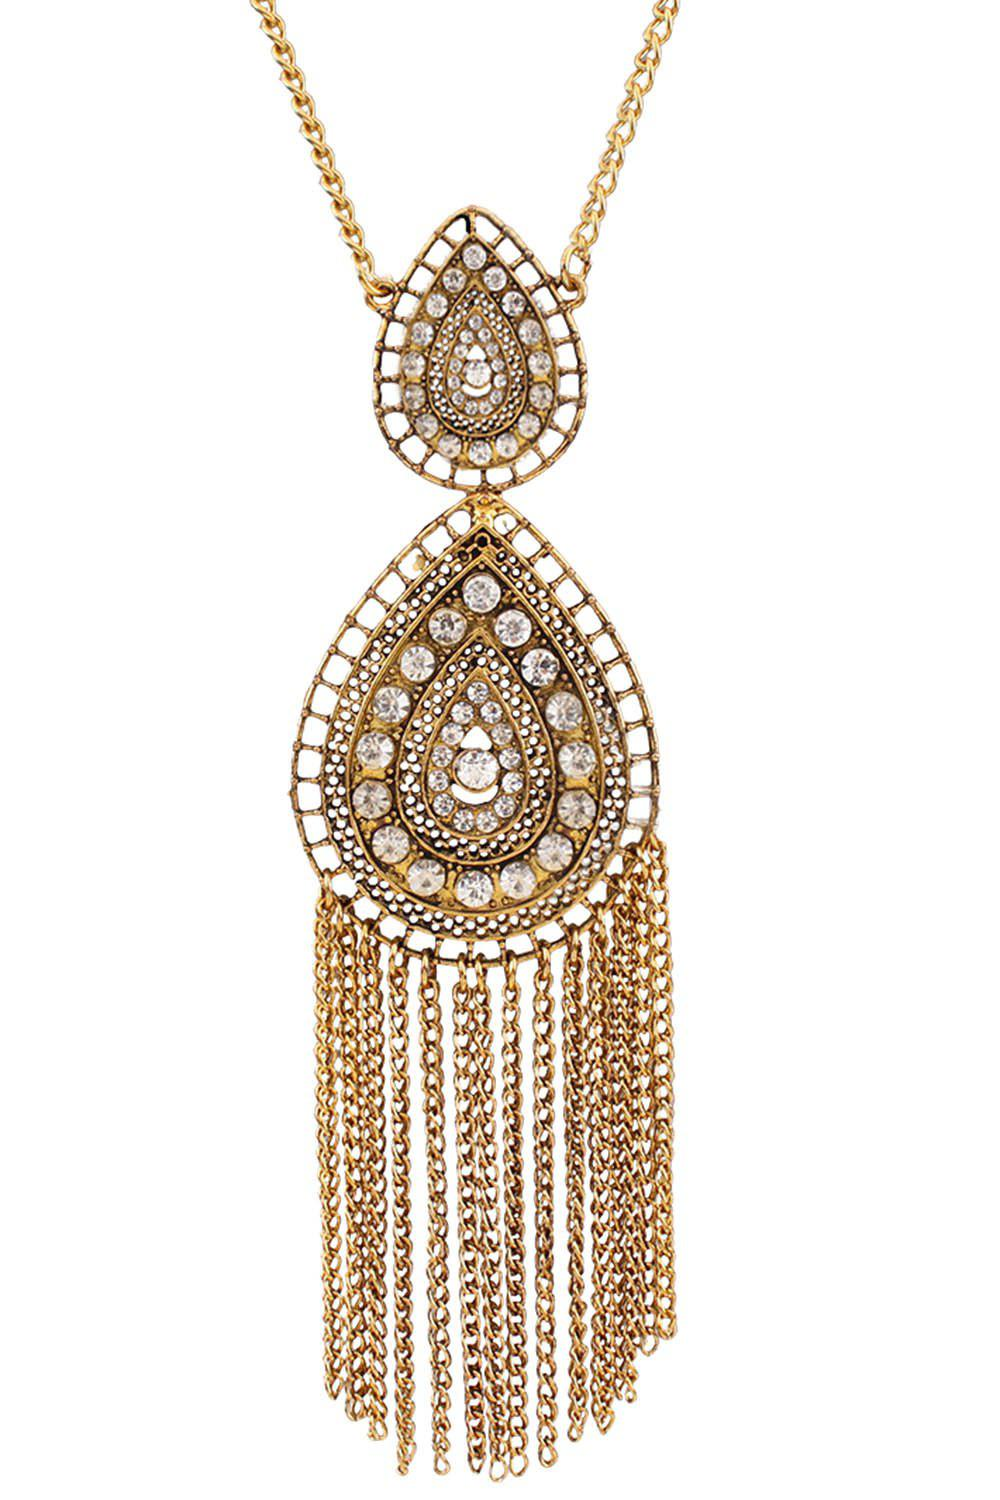 Vintage Rhinestone Water Drop Fringed Necklace - GOLDEN